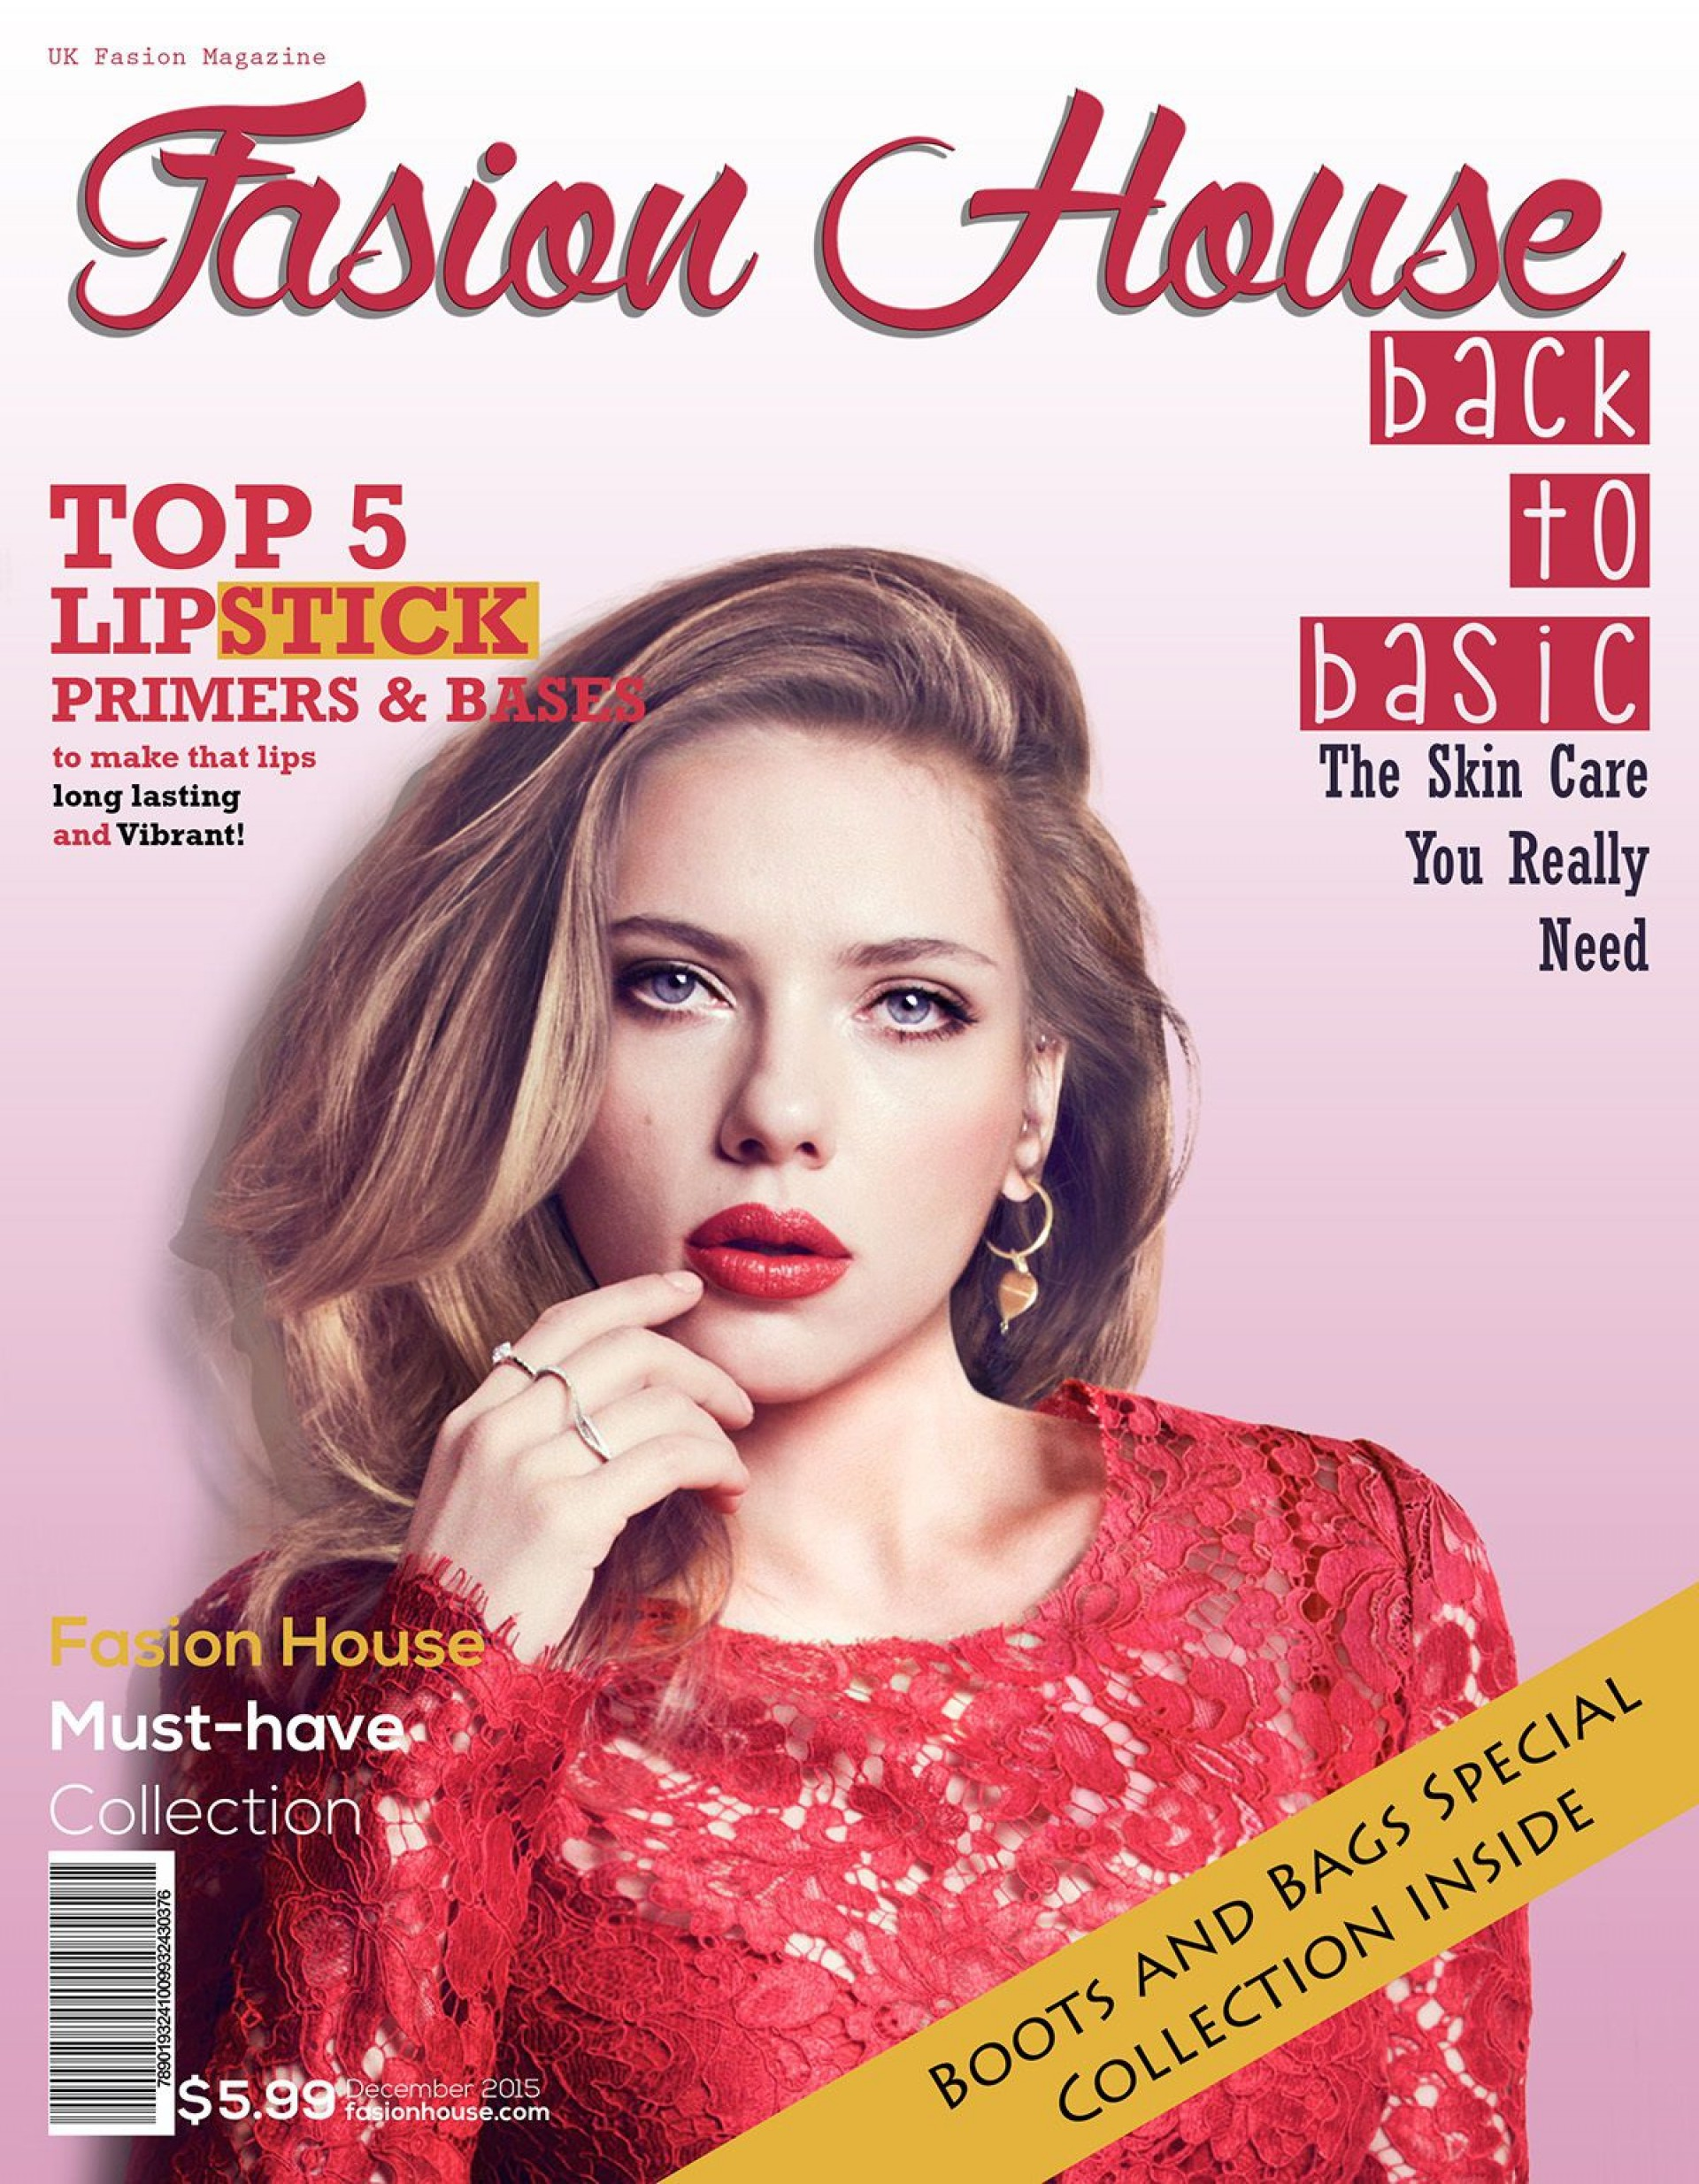 002 Outstanding Photoshop Fashion Magazine Cover Template Free Design 1920